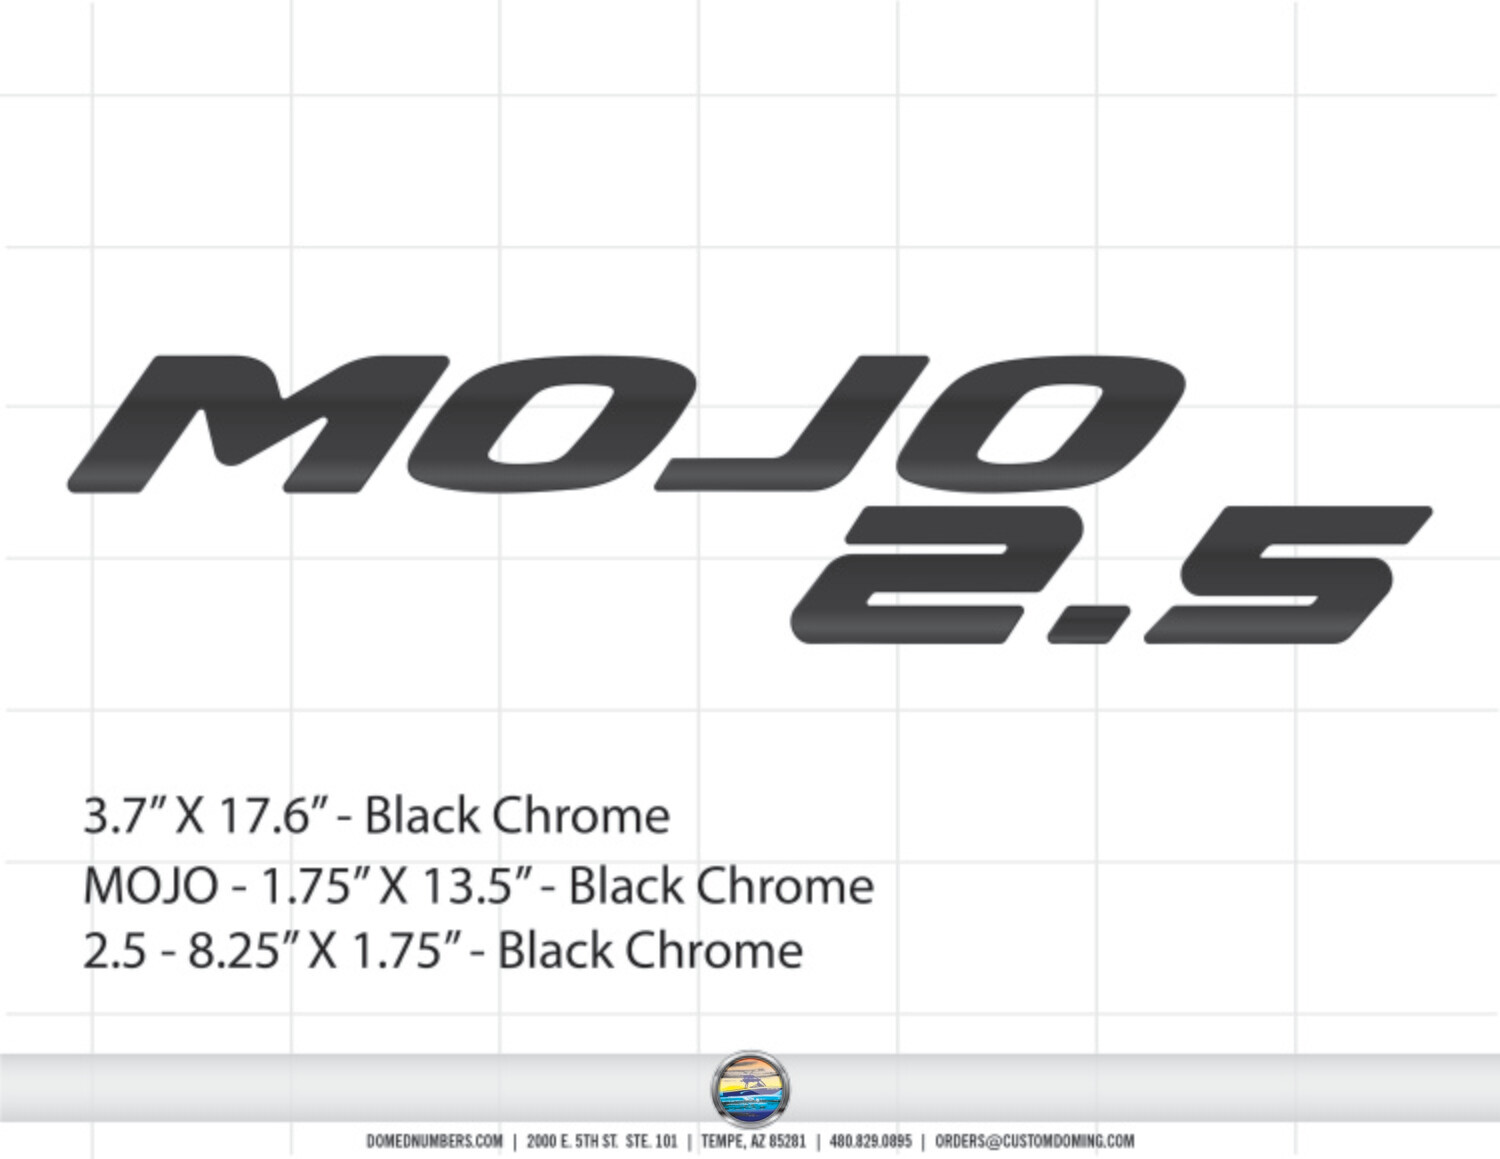 Moomba MOJO 2.5 Decal Set (2 included)